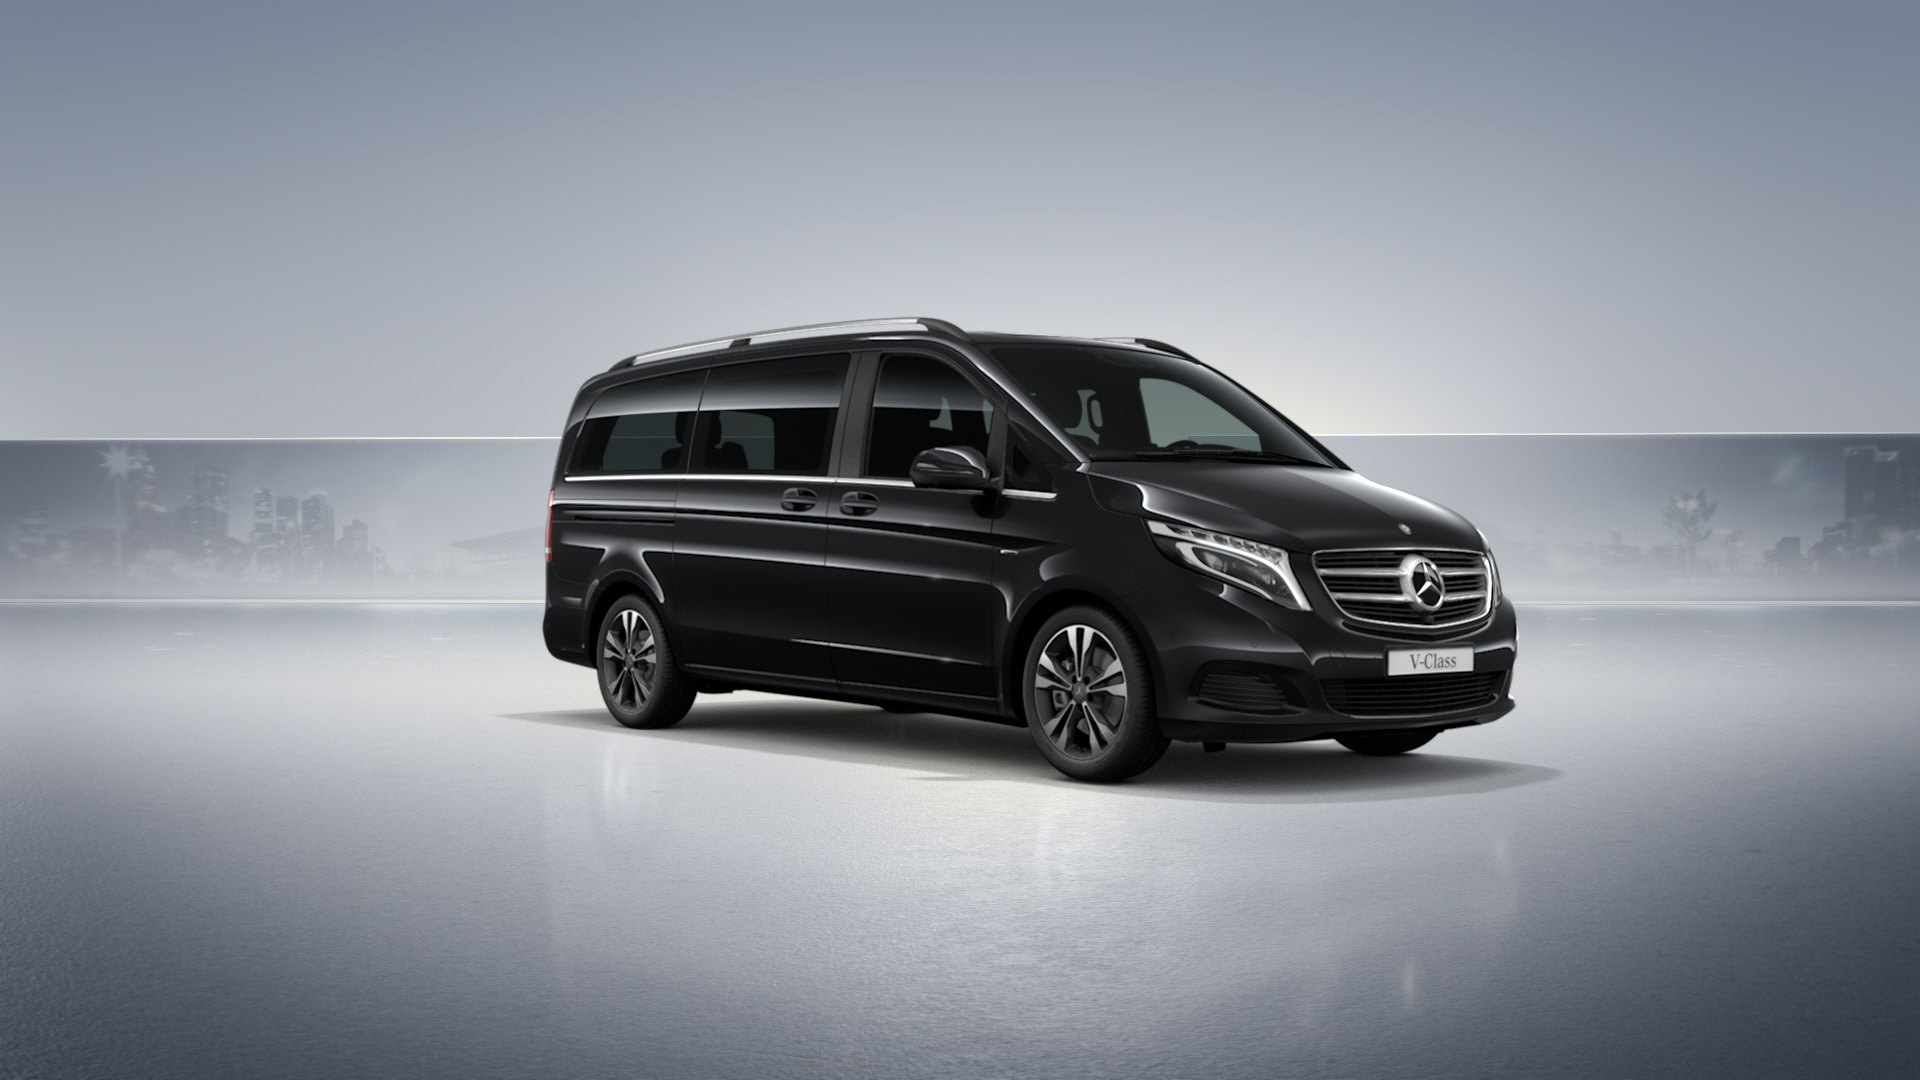 mercedes benz v class xl vip 4matic alphubel limousine service. Cars Review. Best American Auto & Cars Review